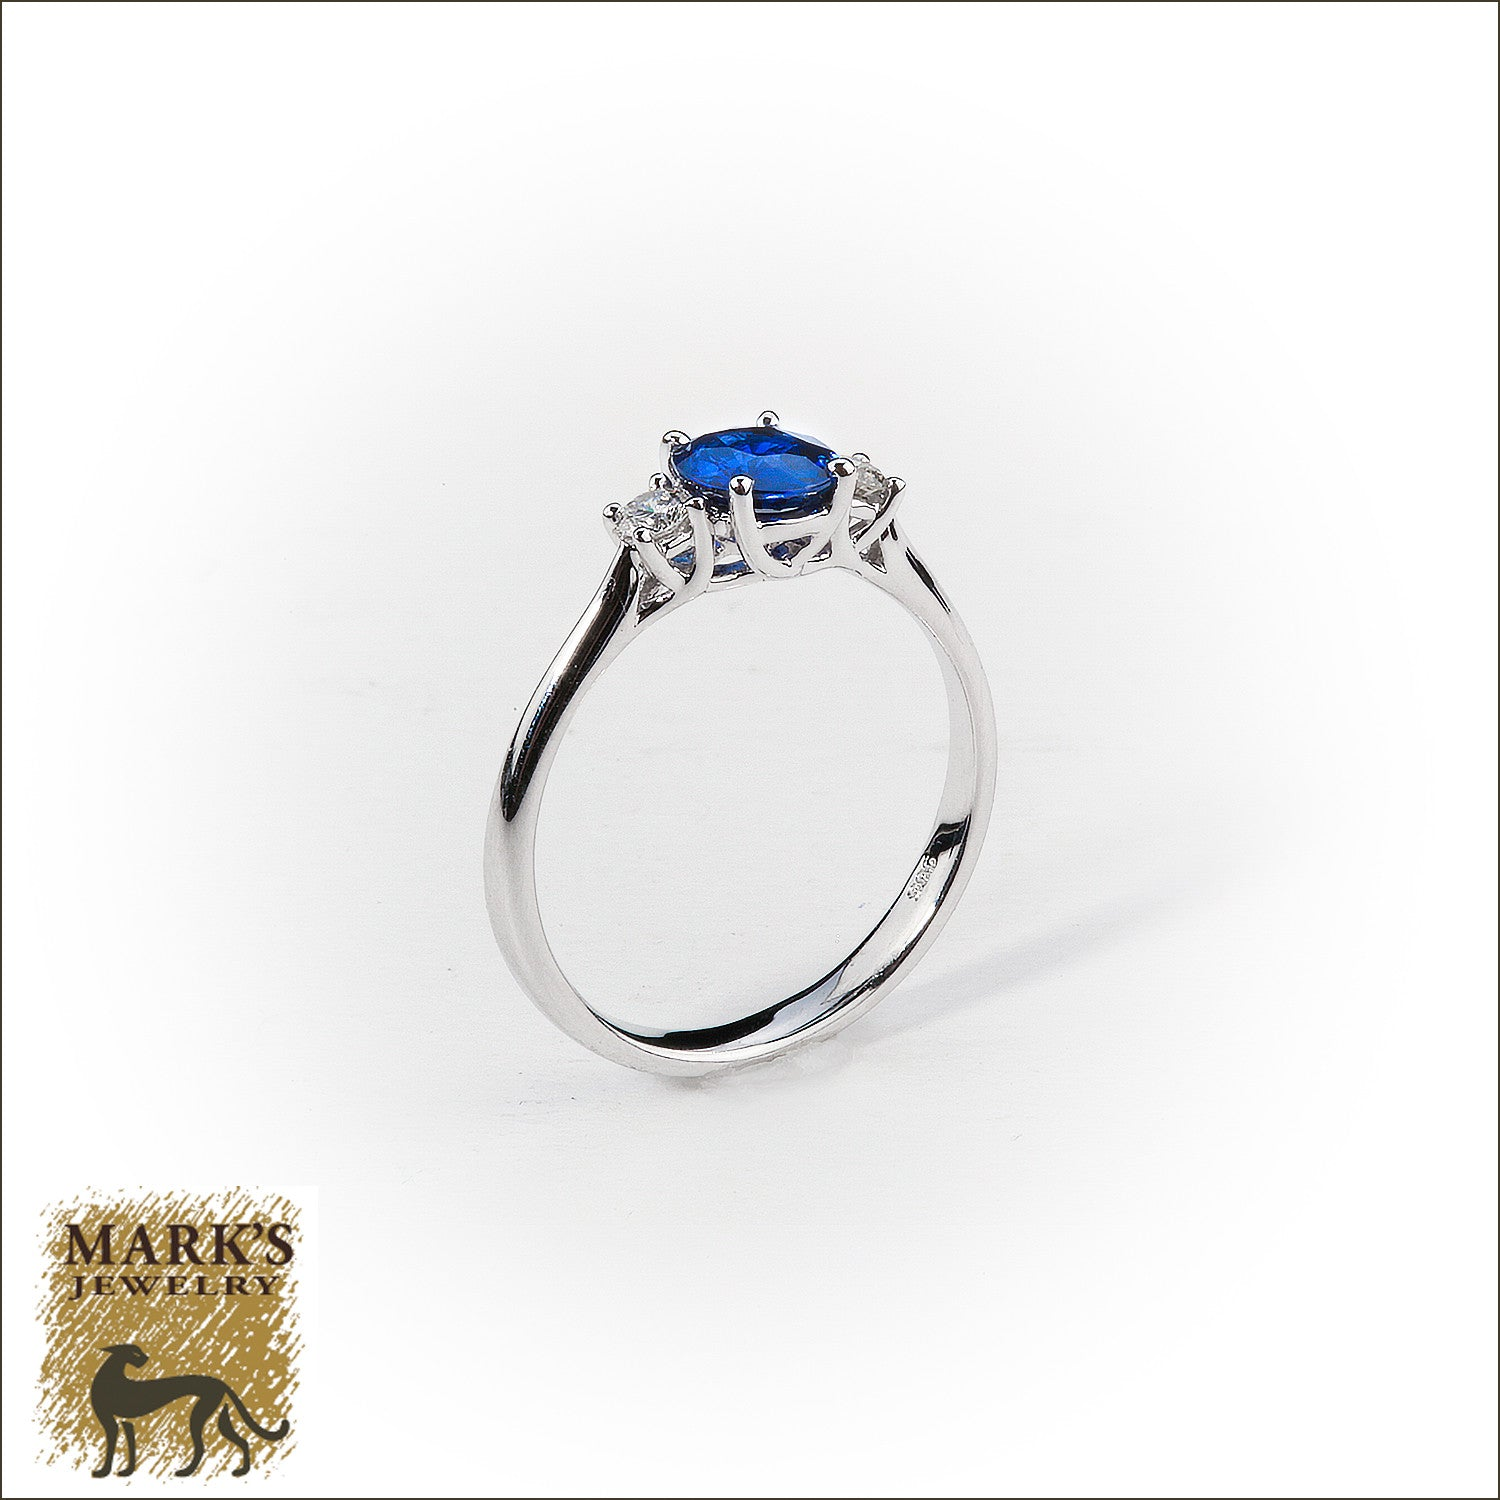 14K White Gold Oval Sapphire & Diamond Ring, Marks Jewelry Birmingham AL